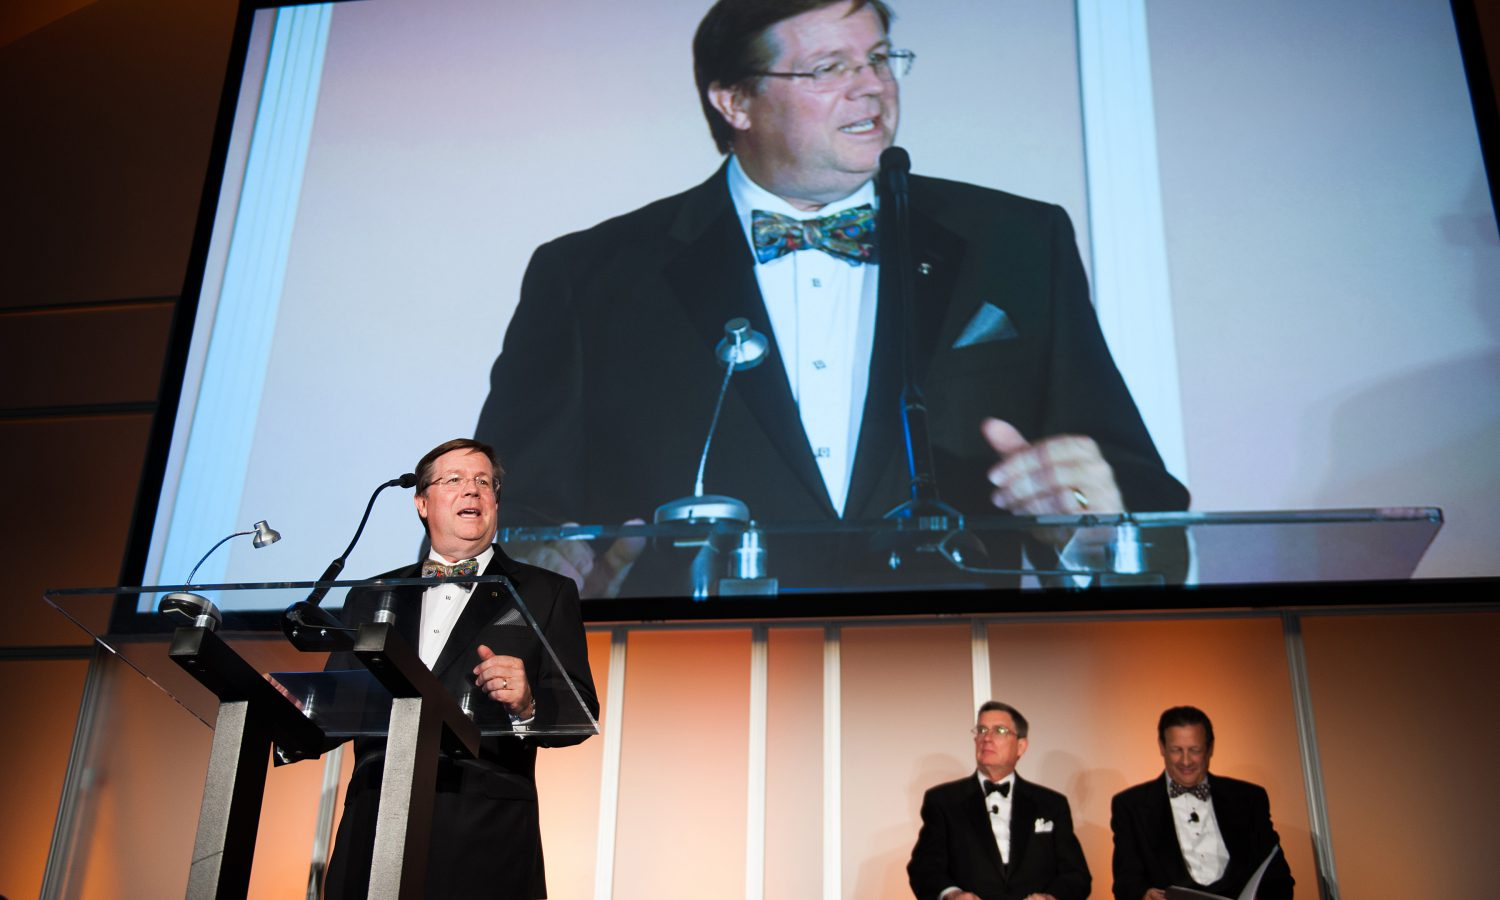 Jim Lentz Honored as Industry Leader of the Year by the Automotive Hall of Fame